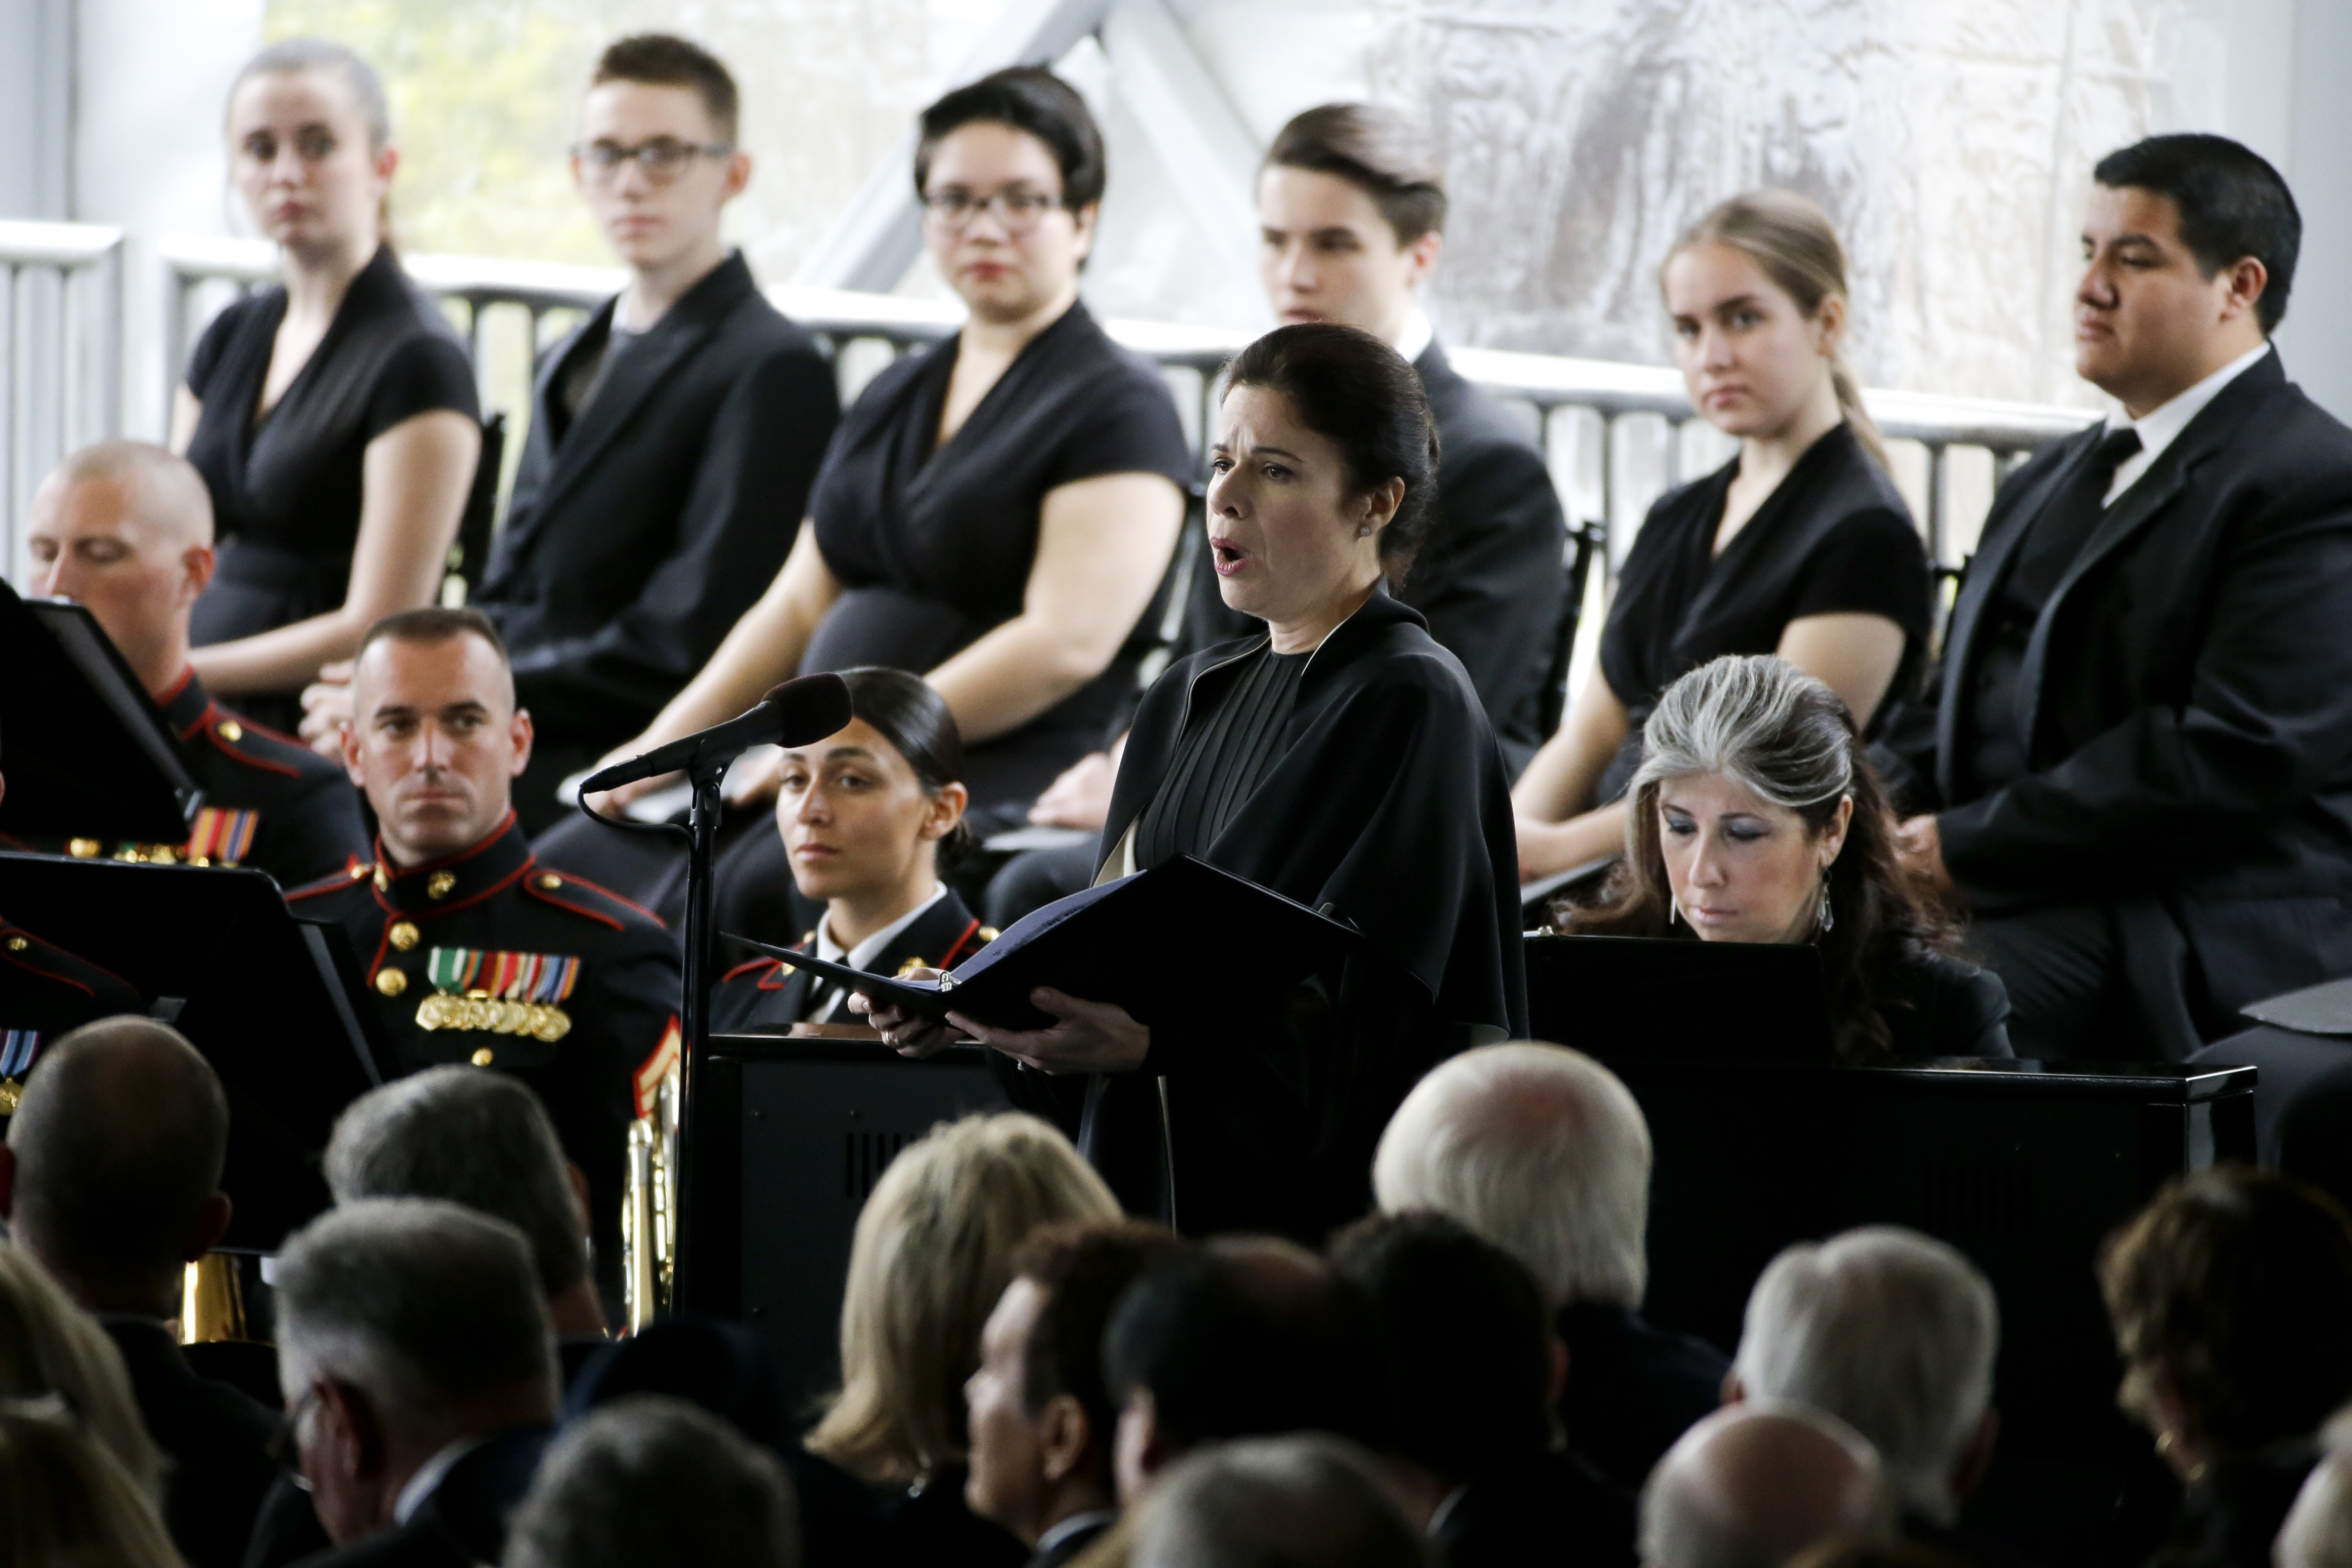 Opera singer Ana Maria Martinez sings Ave Maria during the funeral service.